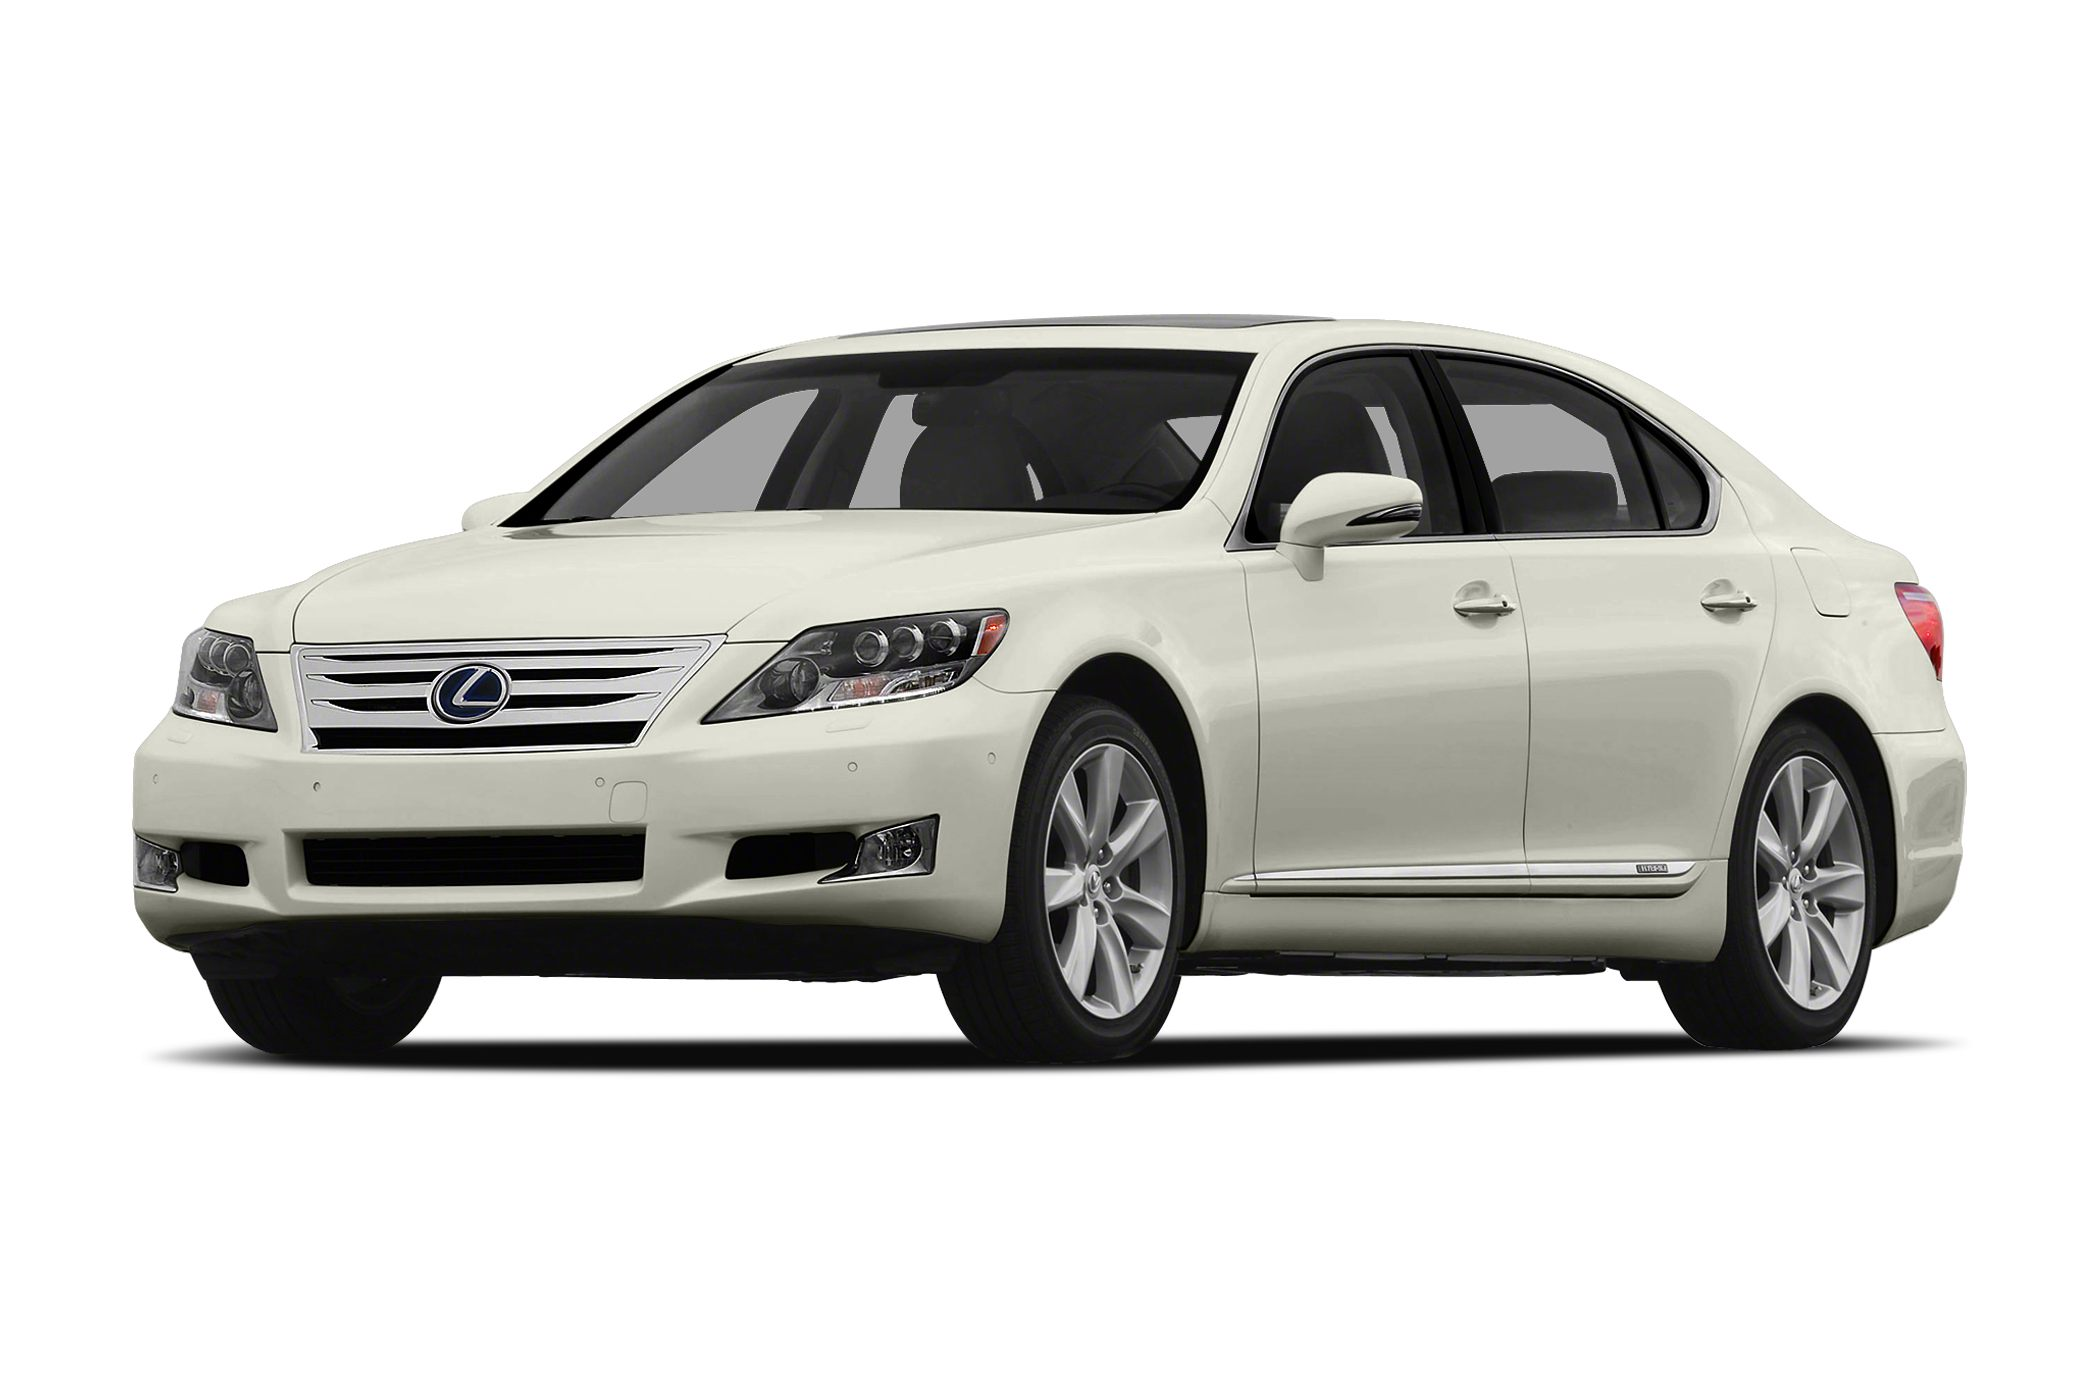 2012 Lexus LS 600h